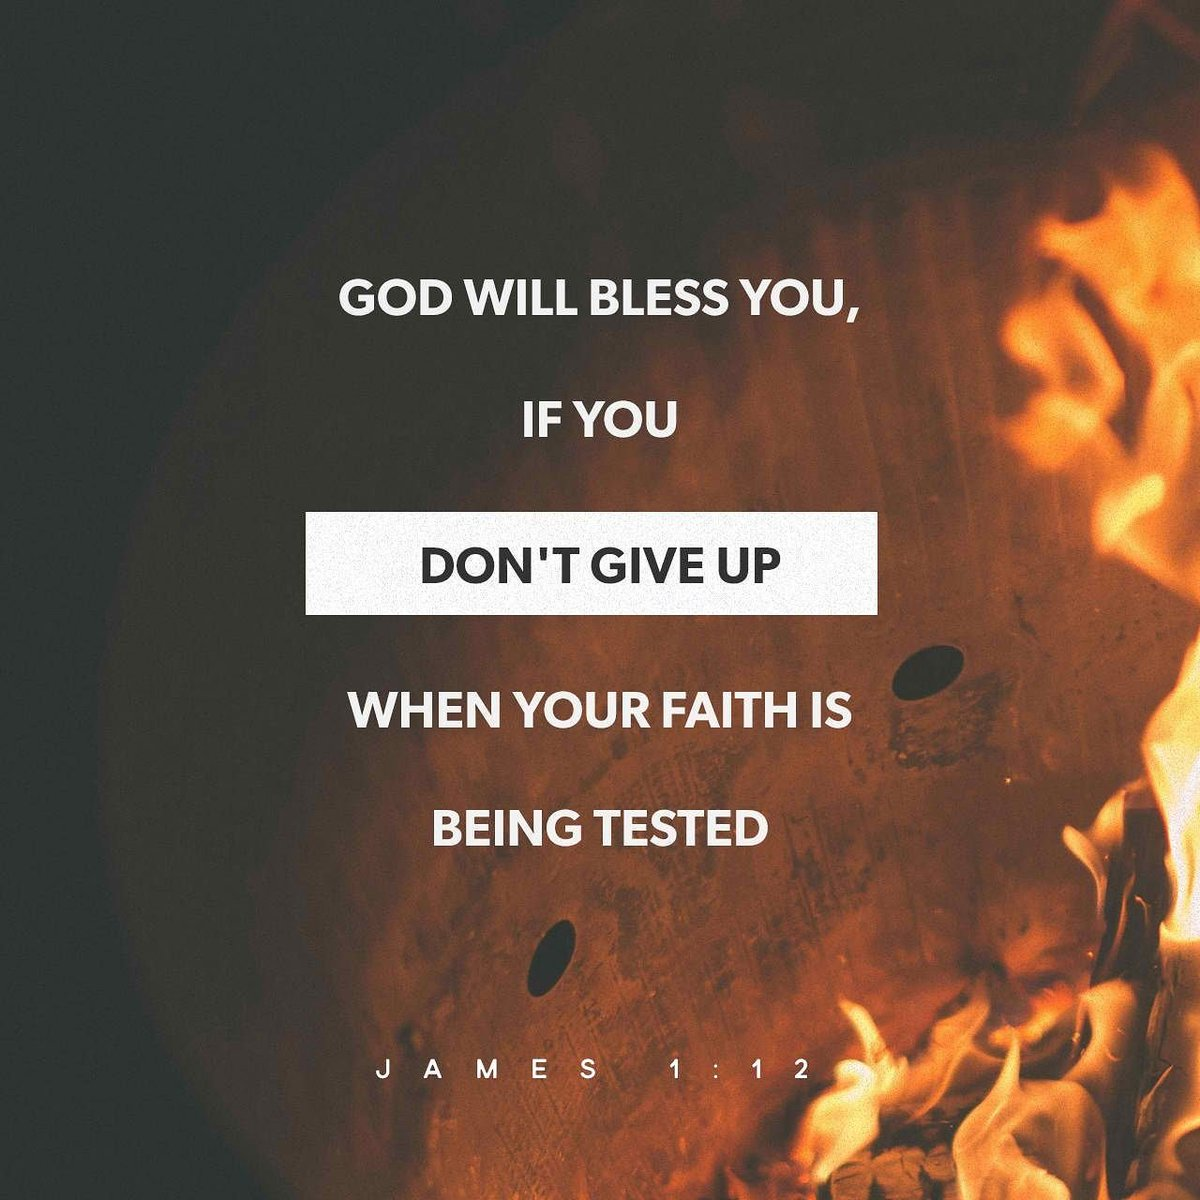 Good morning! I want you to remember something, you&#39;re amazing! Don&#39;t give up on what you truly want! Keep fighting! #NeverAlone #Labyu <br>http://pic.twitter.com/l6a6rOsXgG